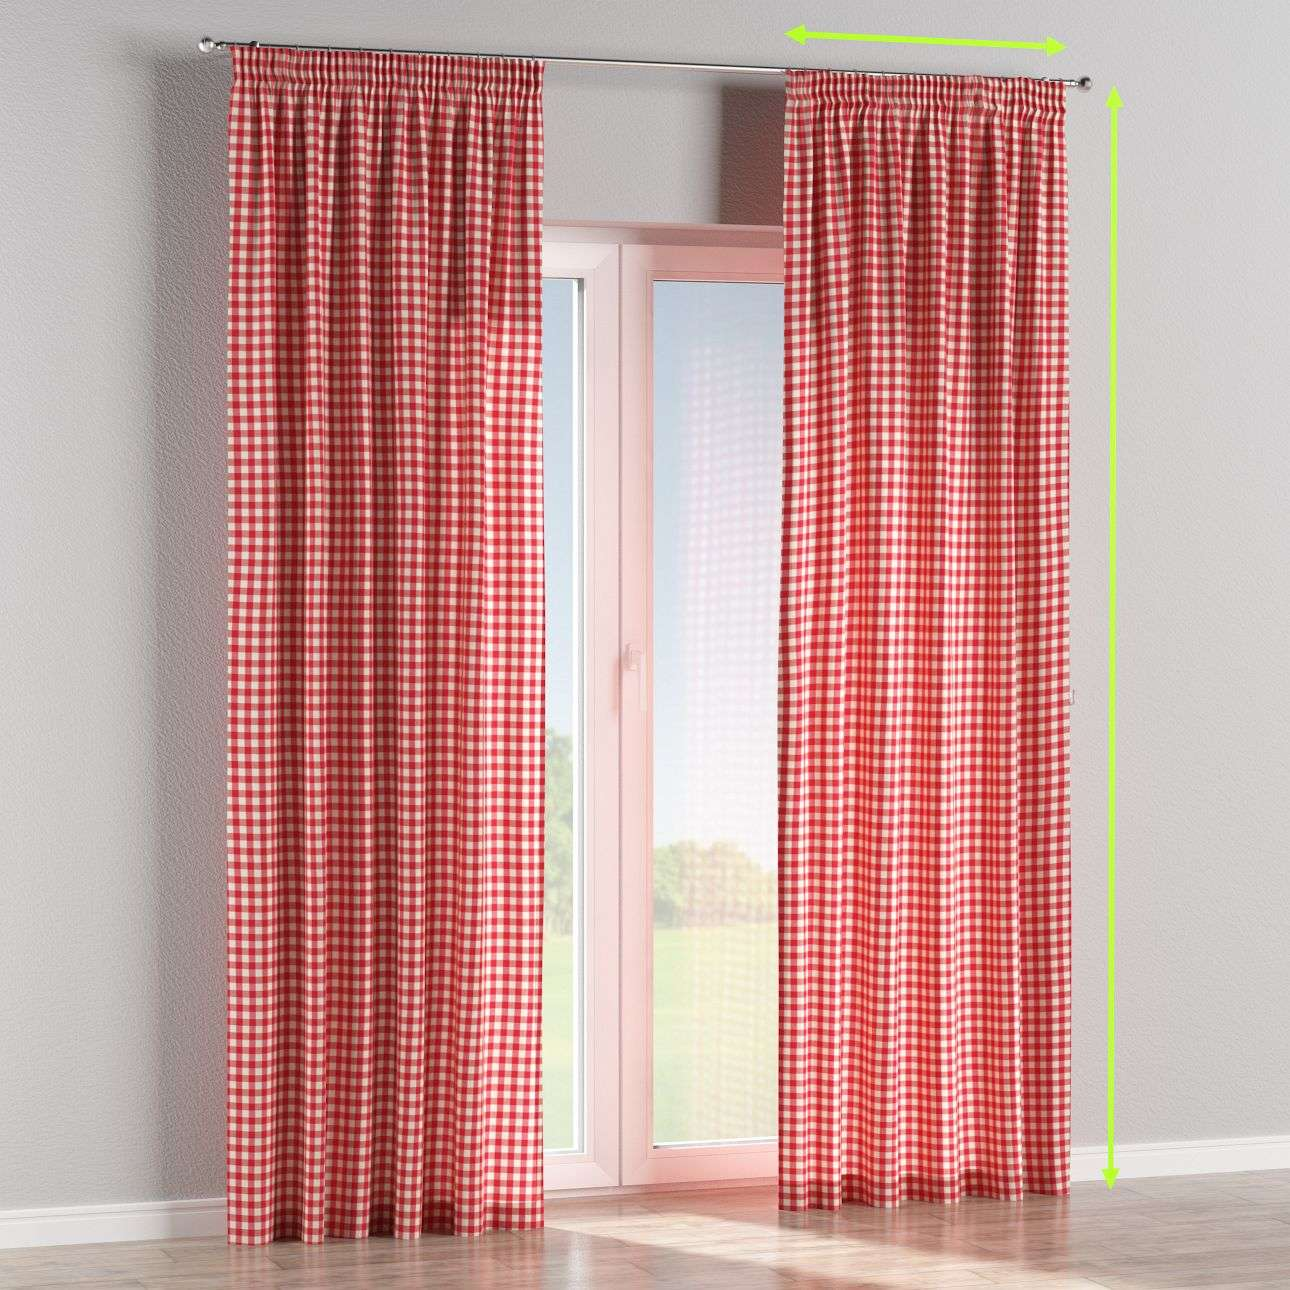 Pencil pleat curtains in collection Quadro, fabric: 136-16